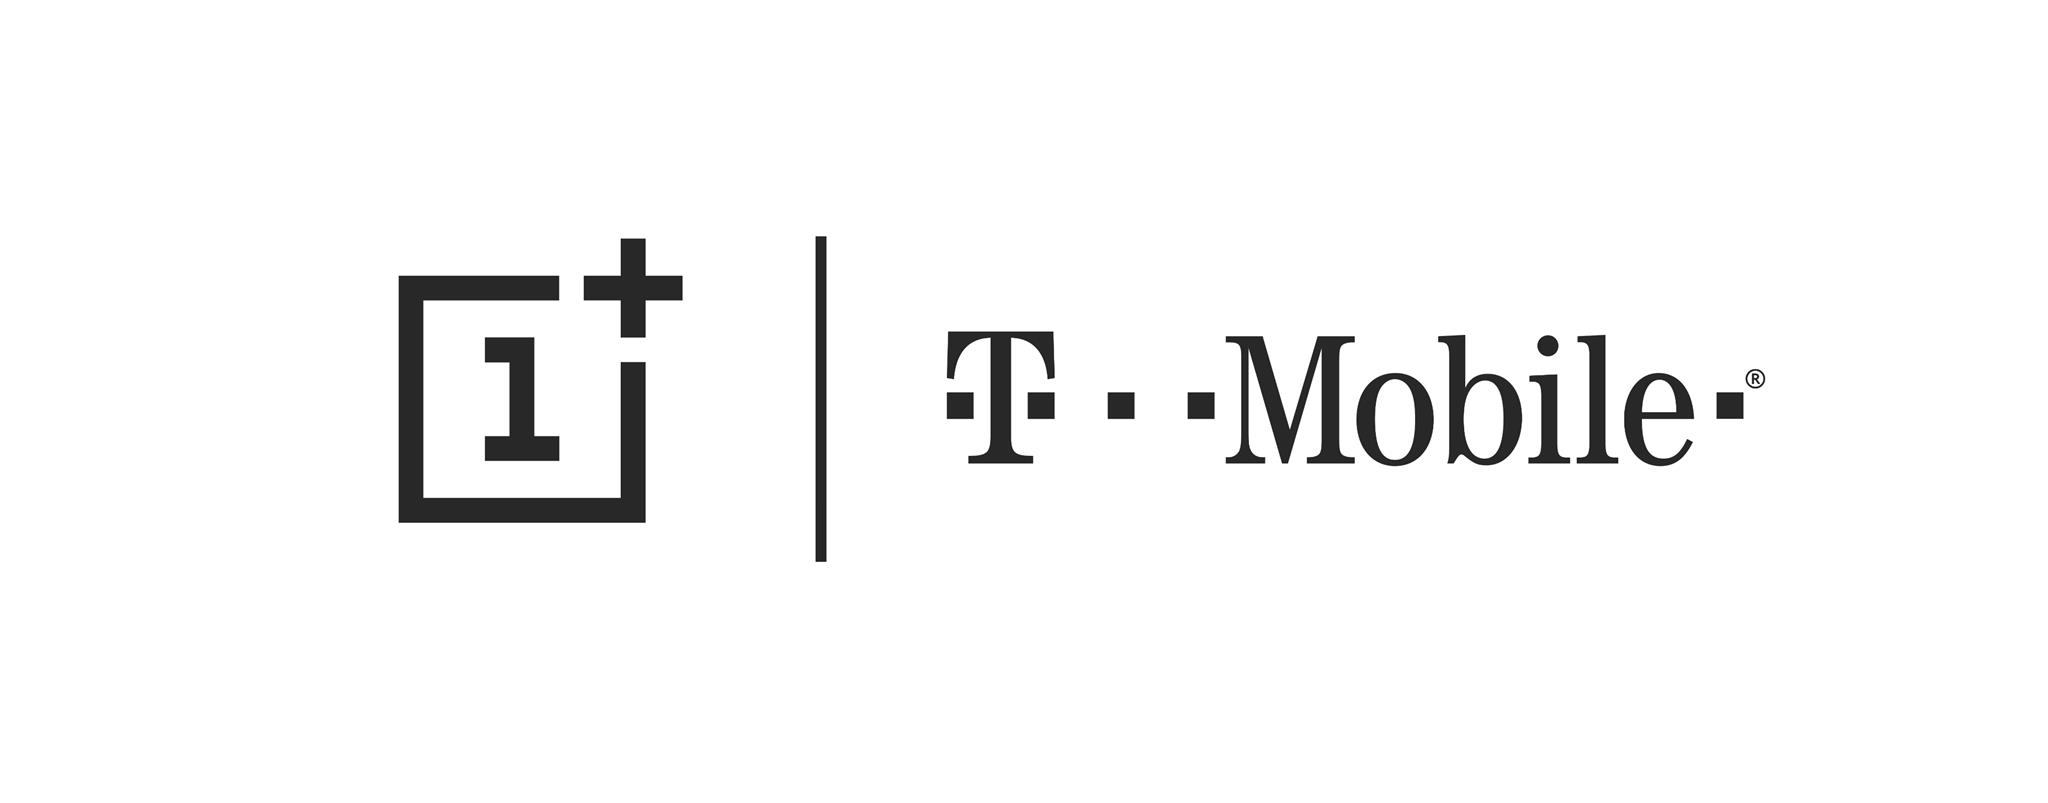 Update: Early unlock news] OnePlus shares details on 6T T-Mobile